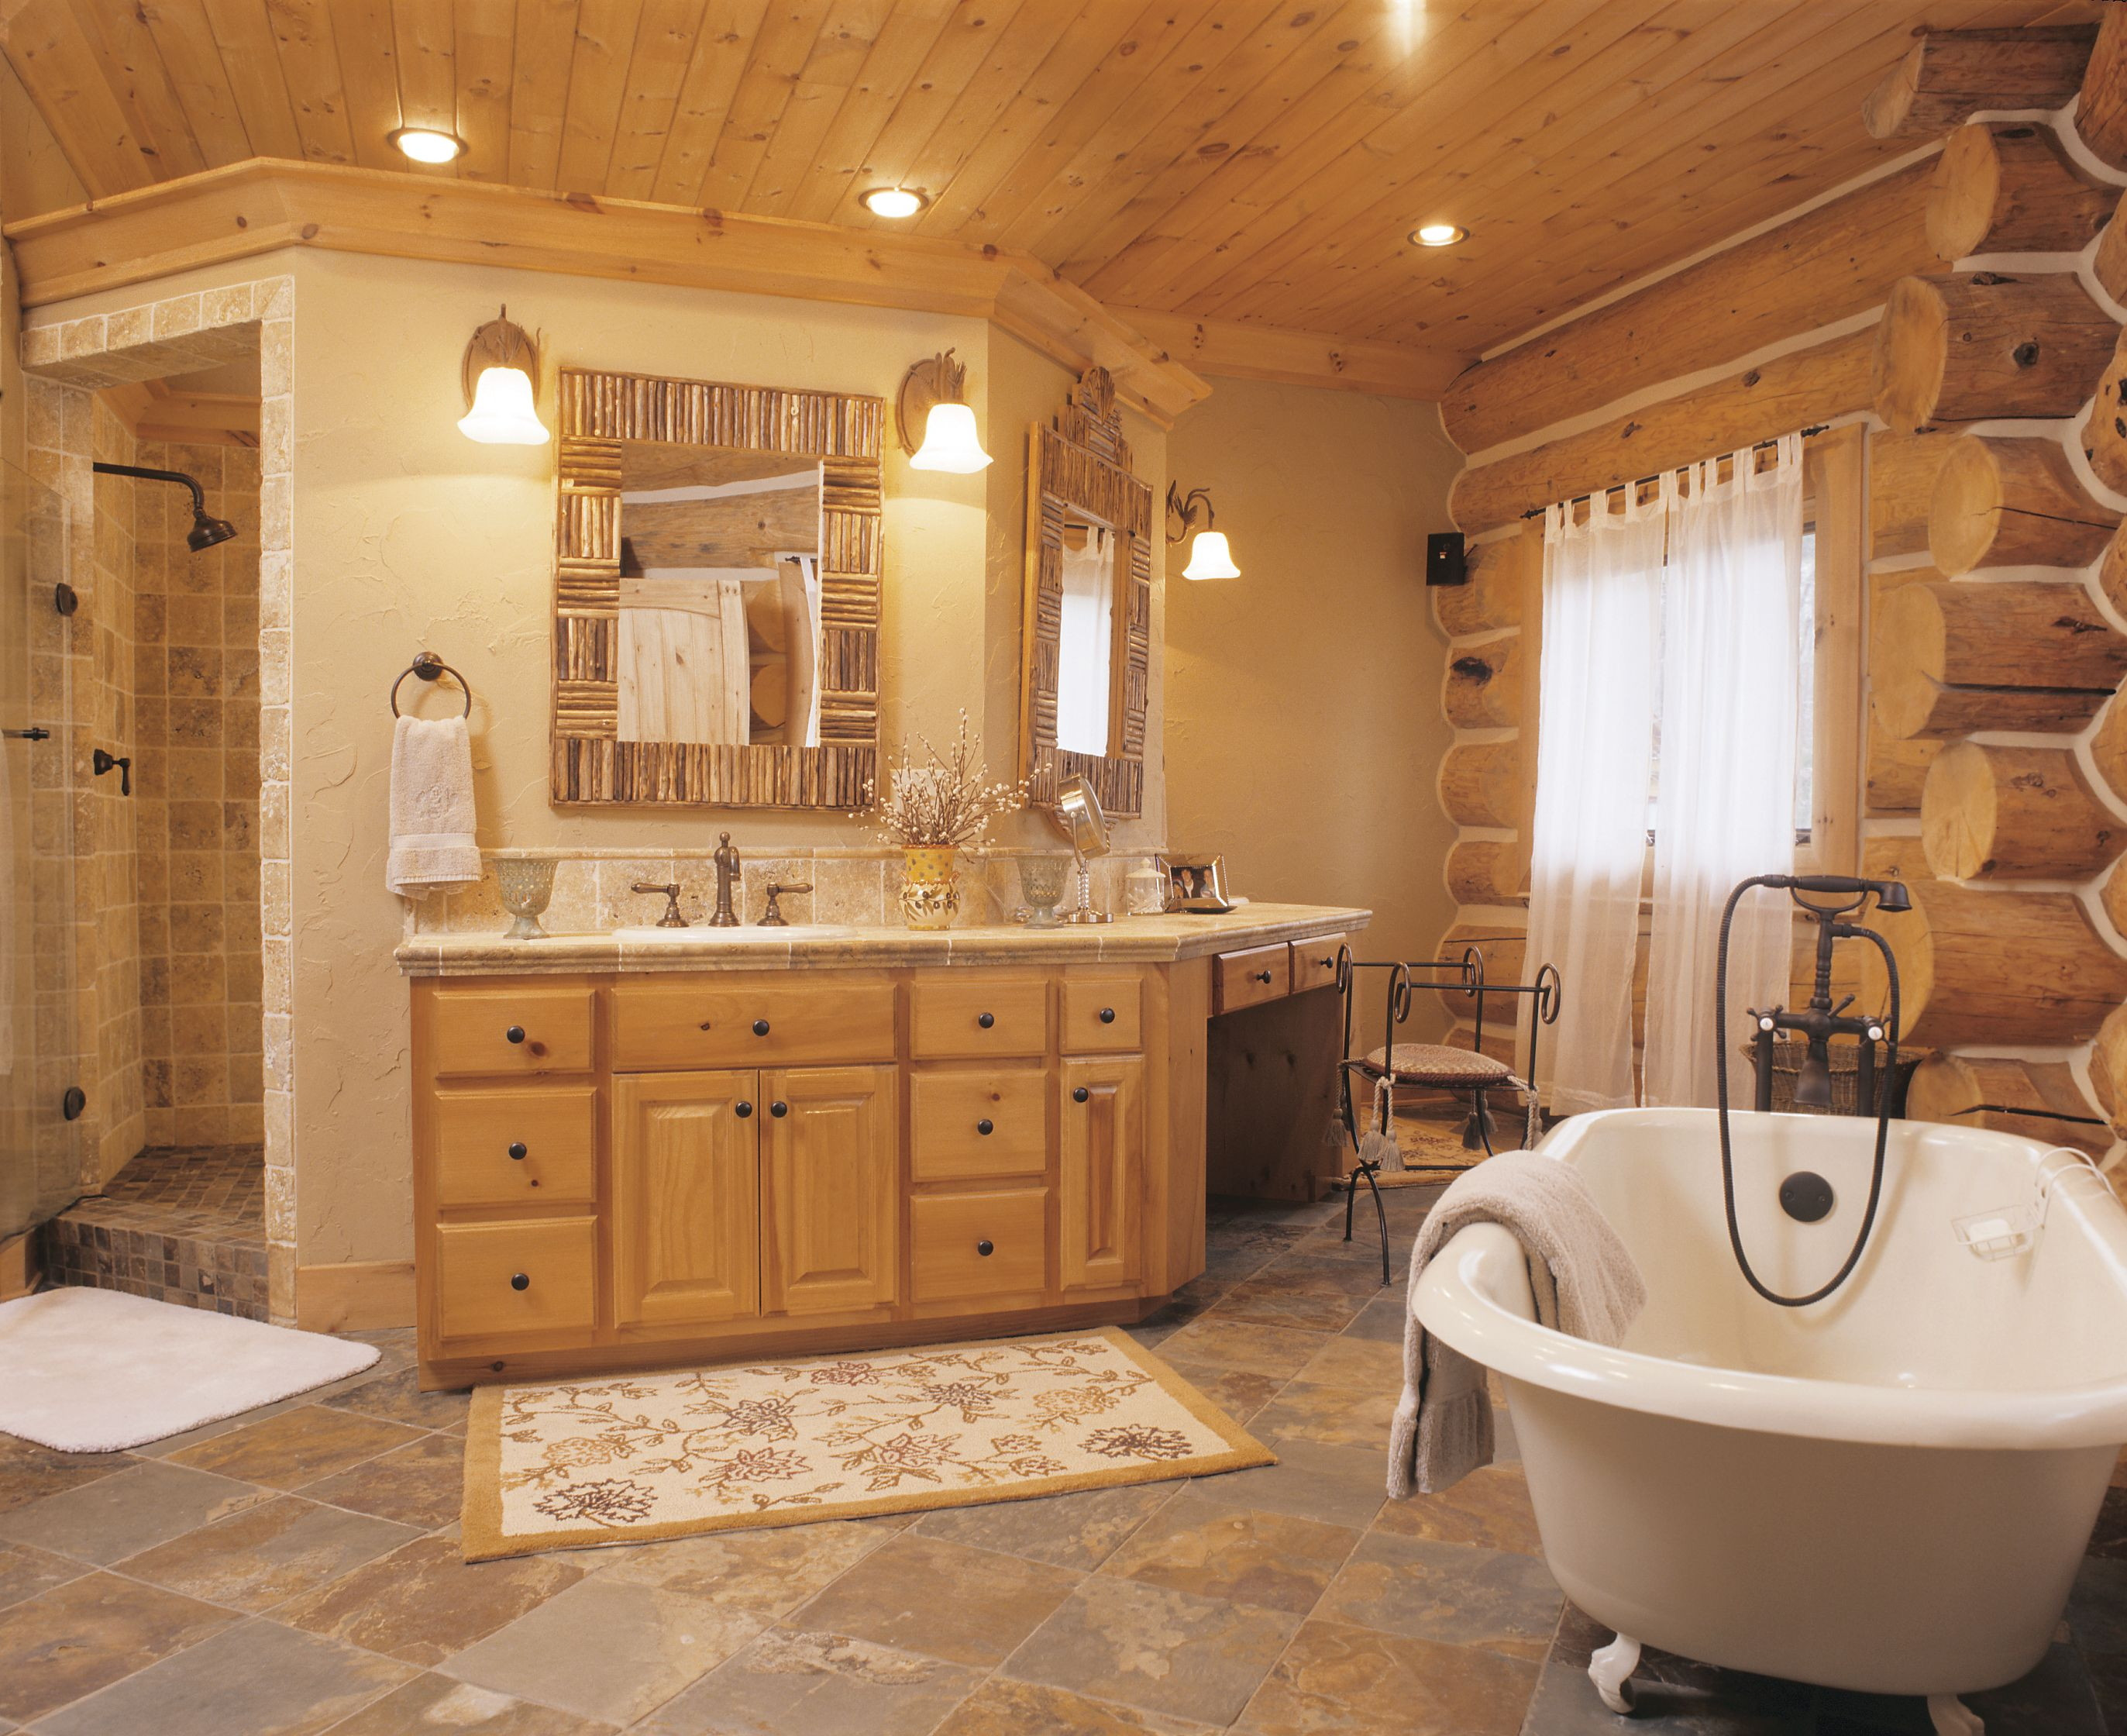 Cozy Handcrafted Log Bathroom Perfect Place To Relax And Rejuvenate Log Home Bathrooms Log Cabin Bathrooms Cabin Bathrooms